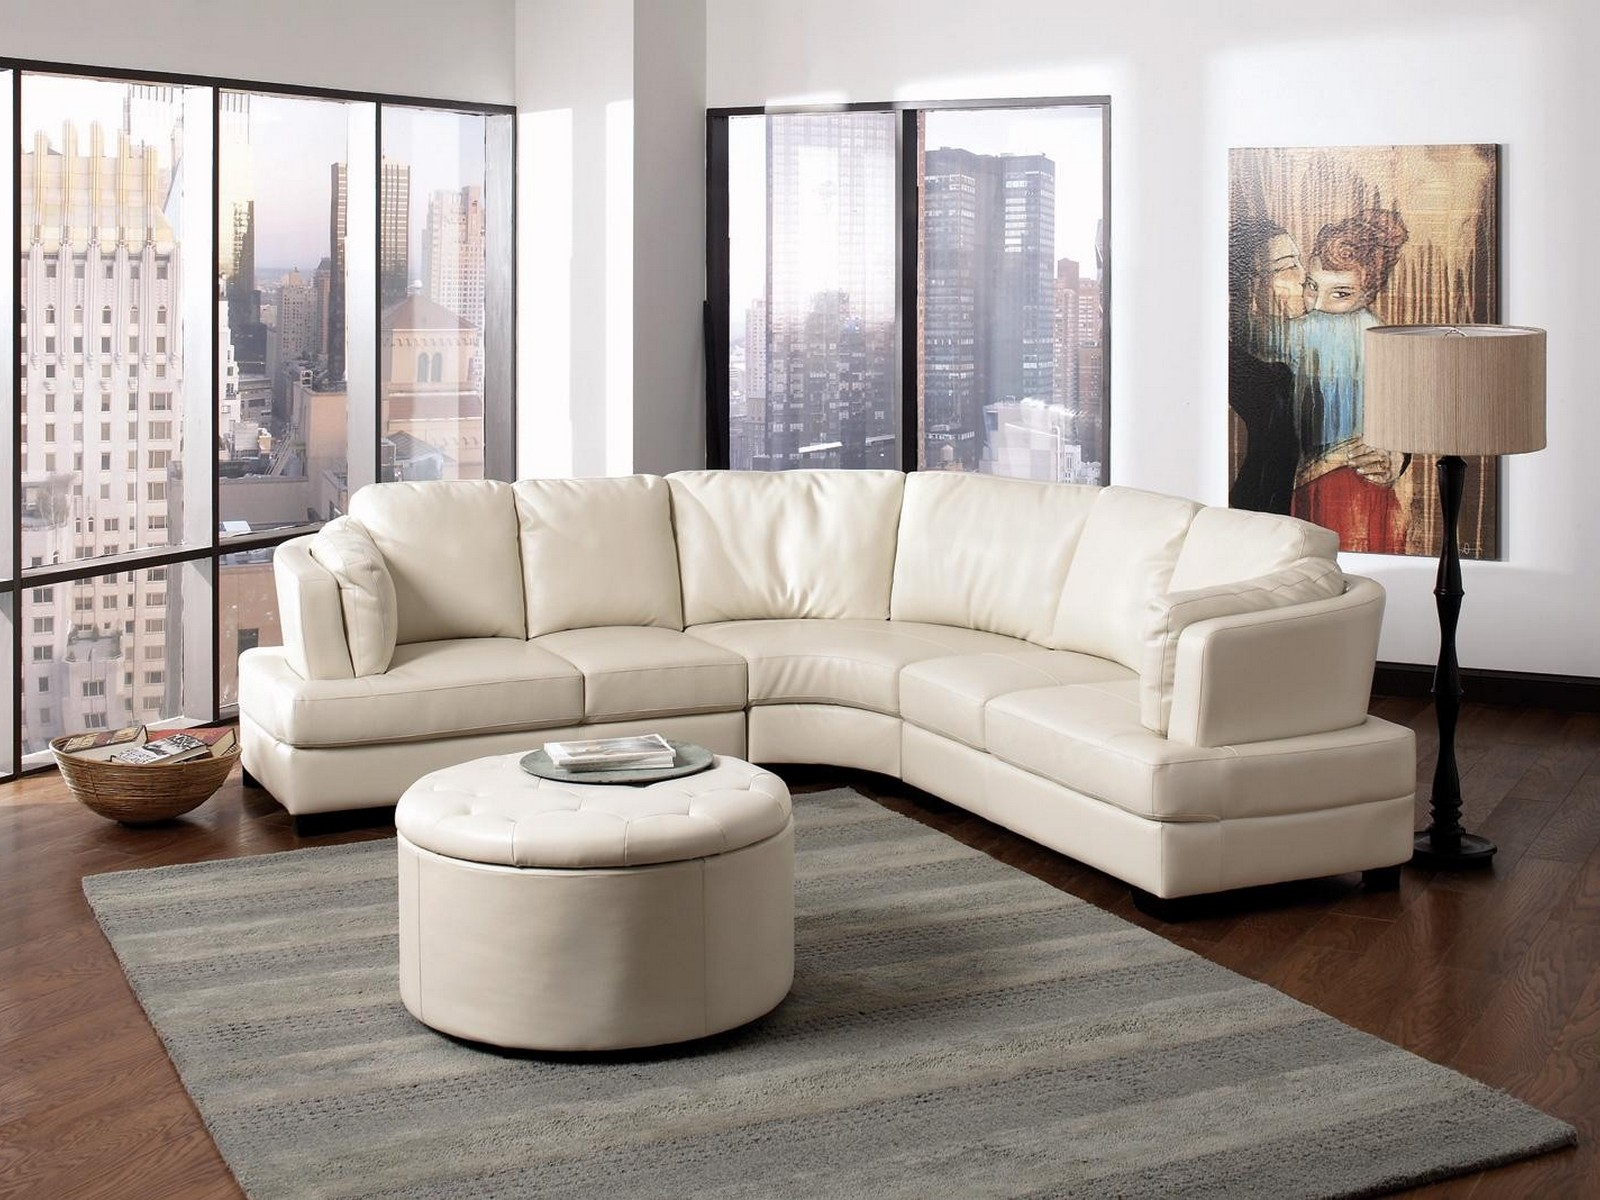 Fascinating living room sectionals with lowes table and sidetable